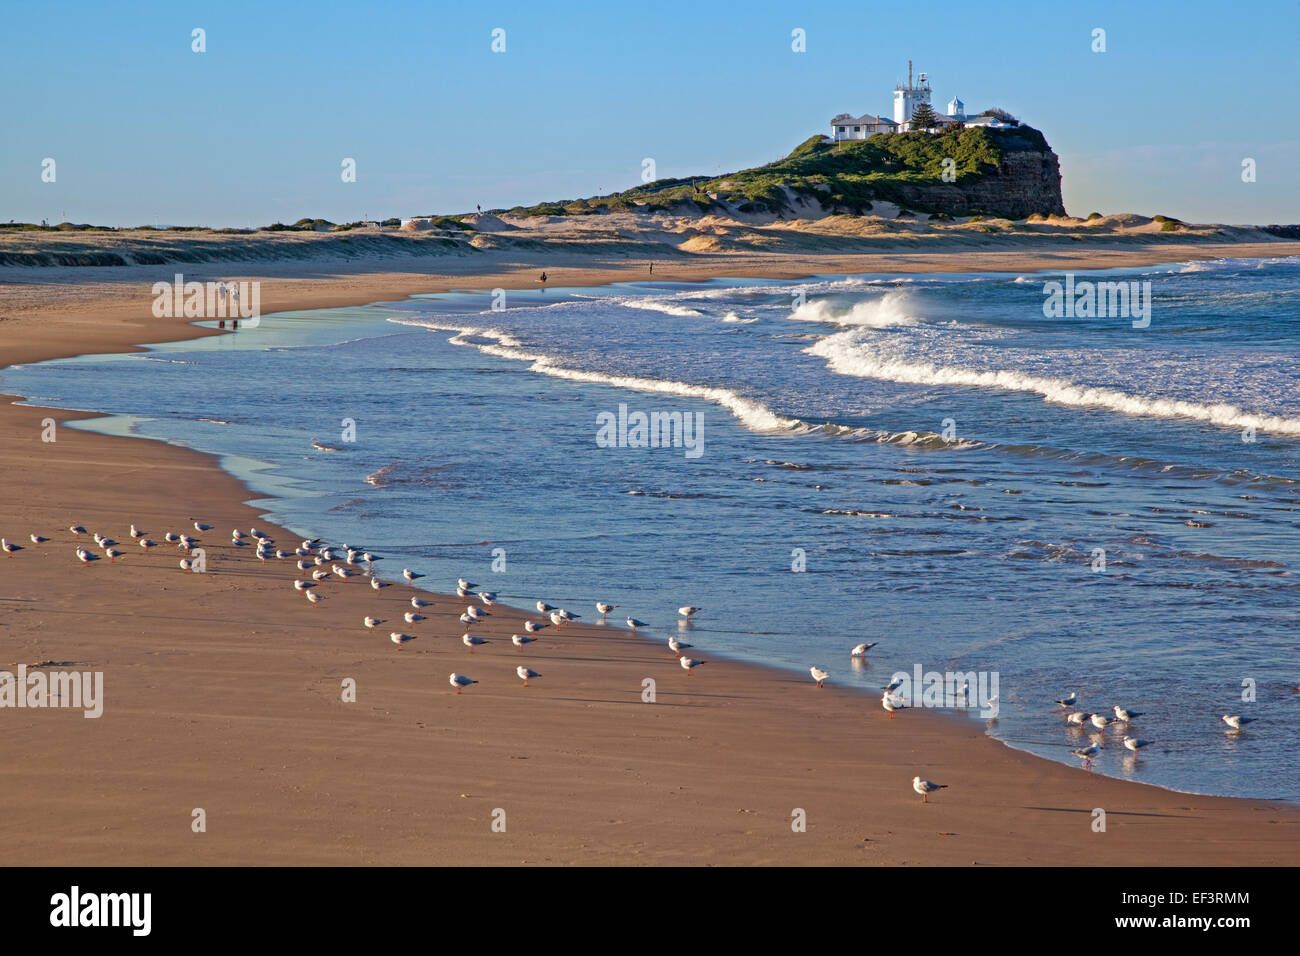 Nobby's Lighthouse and seagulls on the beach at Newcastle, New South Wales, Australia - Stock Image